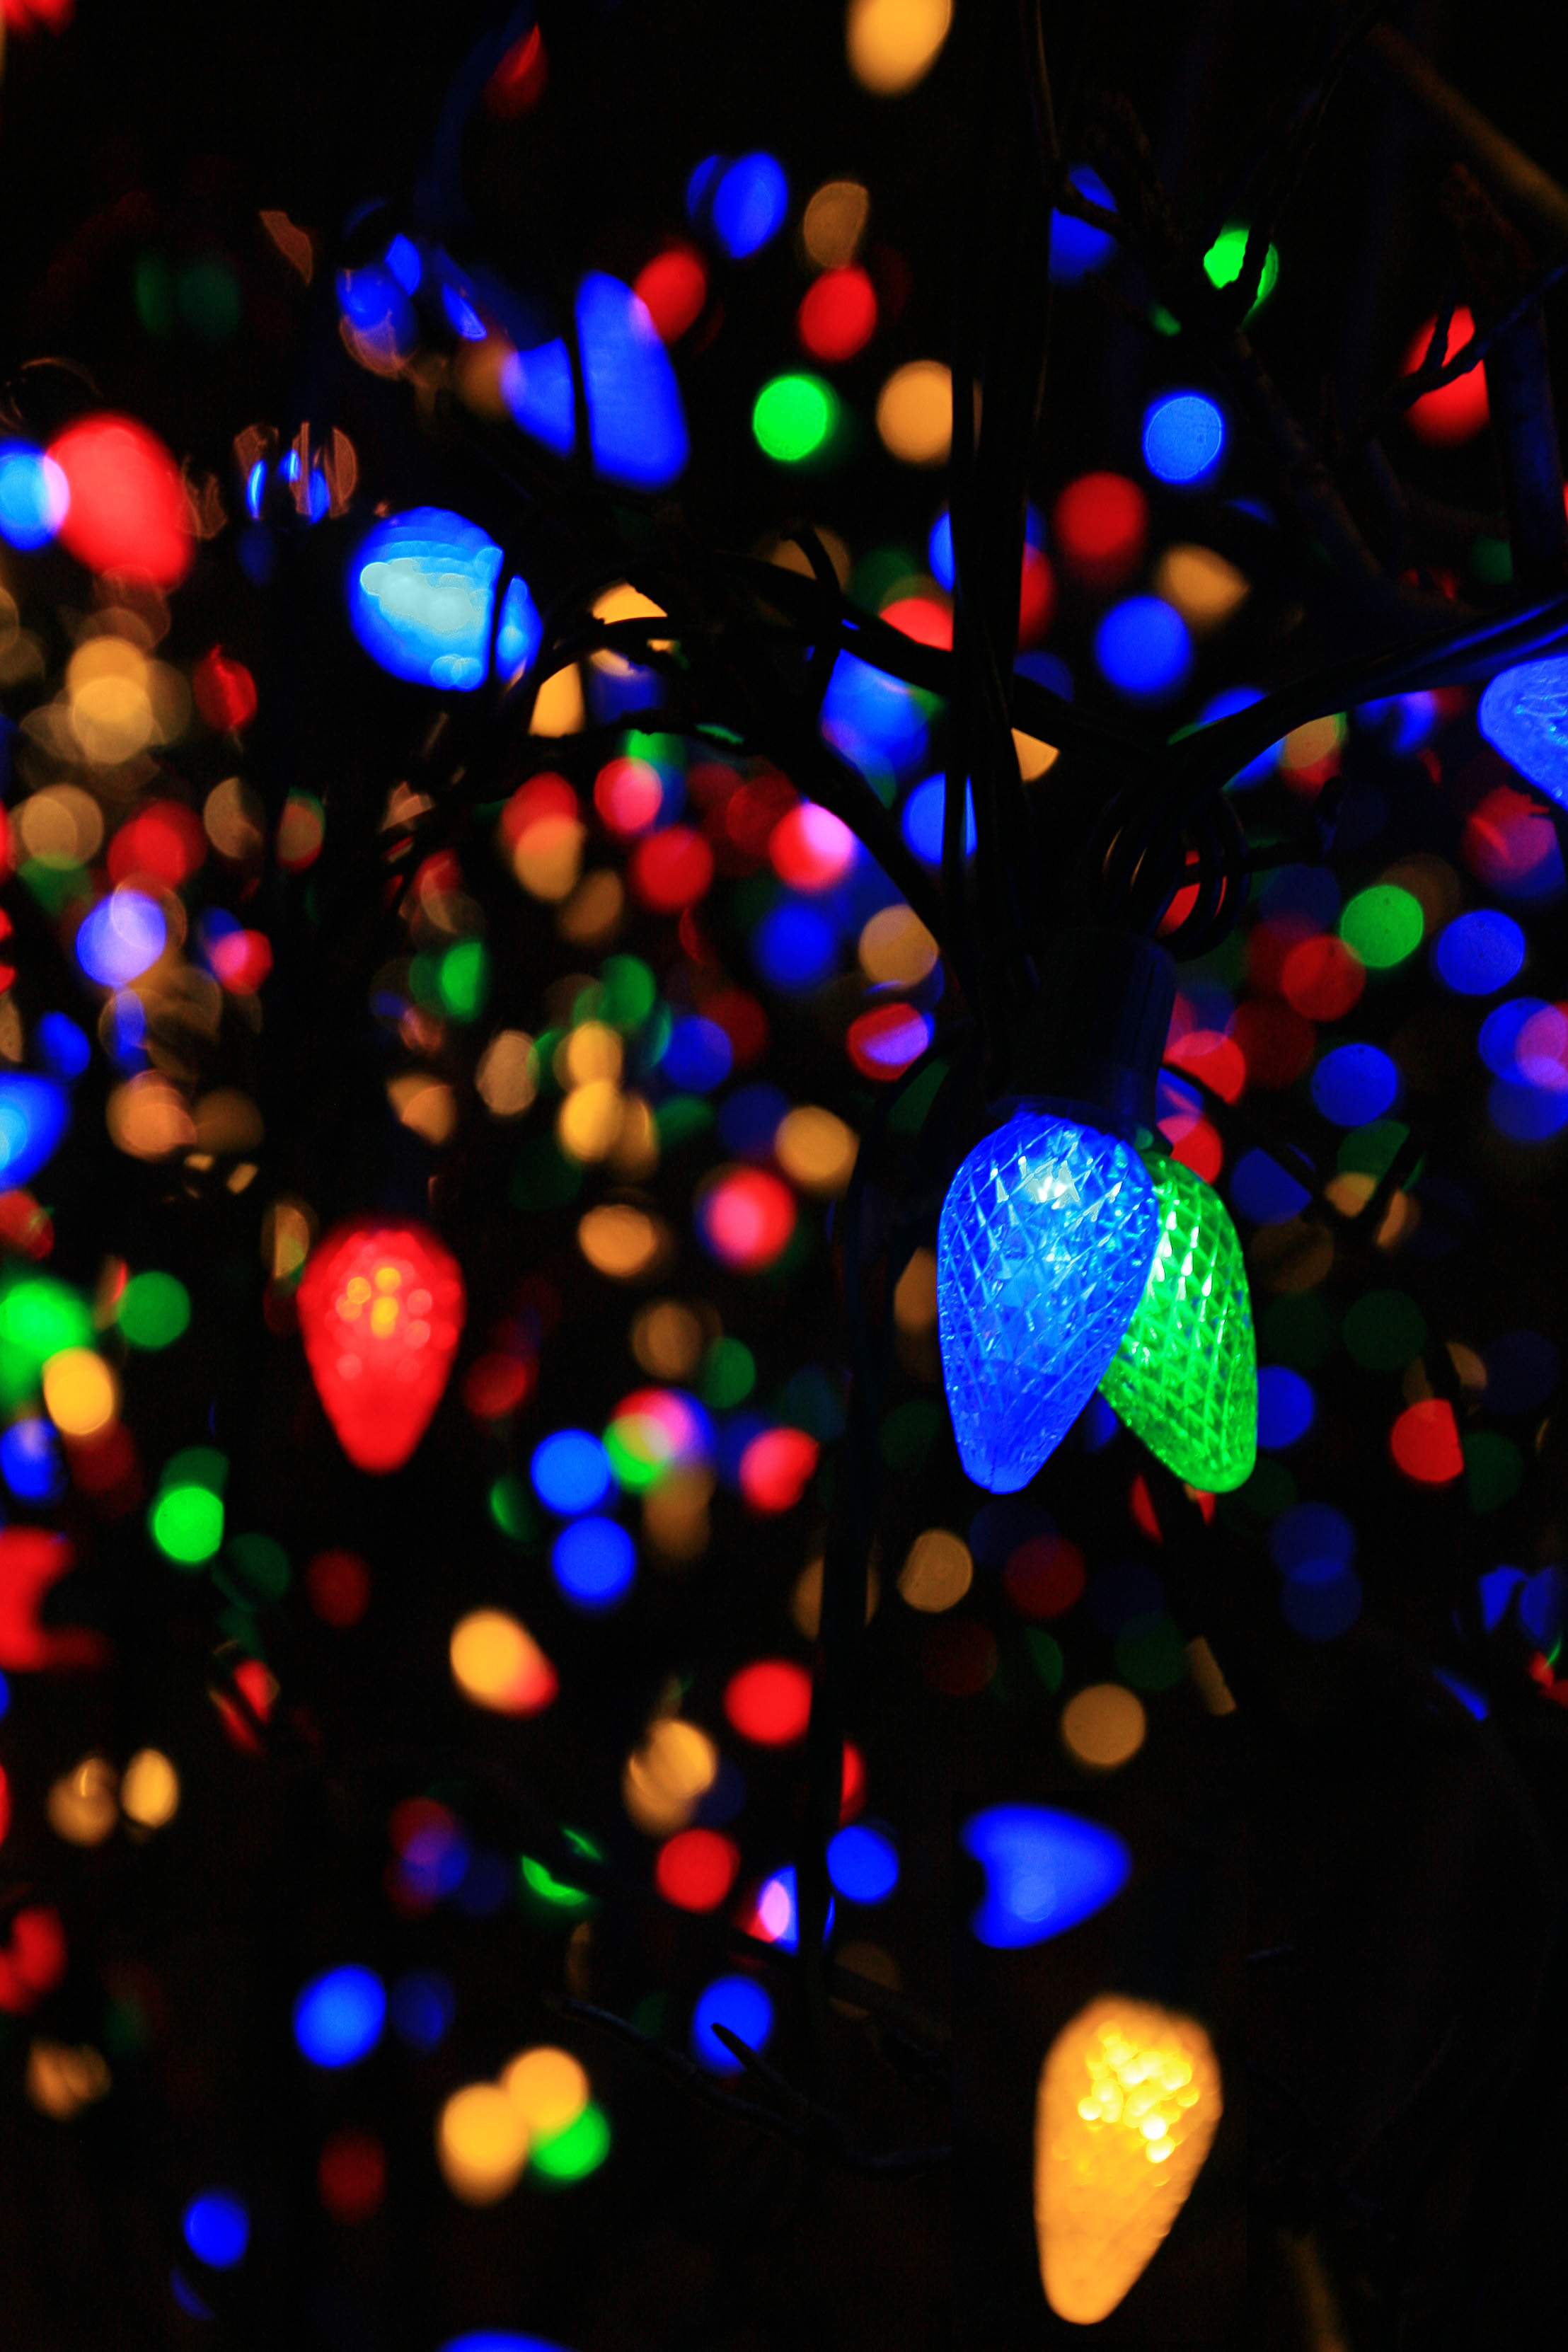 121989 download wallpaper Dark, Garland, Light Bulbs, Multicolored, Motley, Glow screensavers and pictures for free